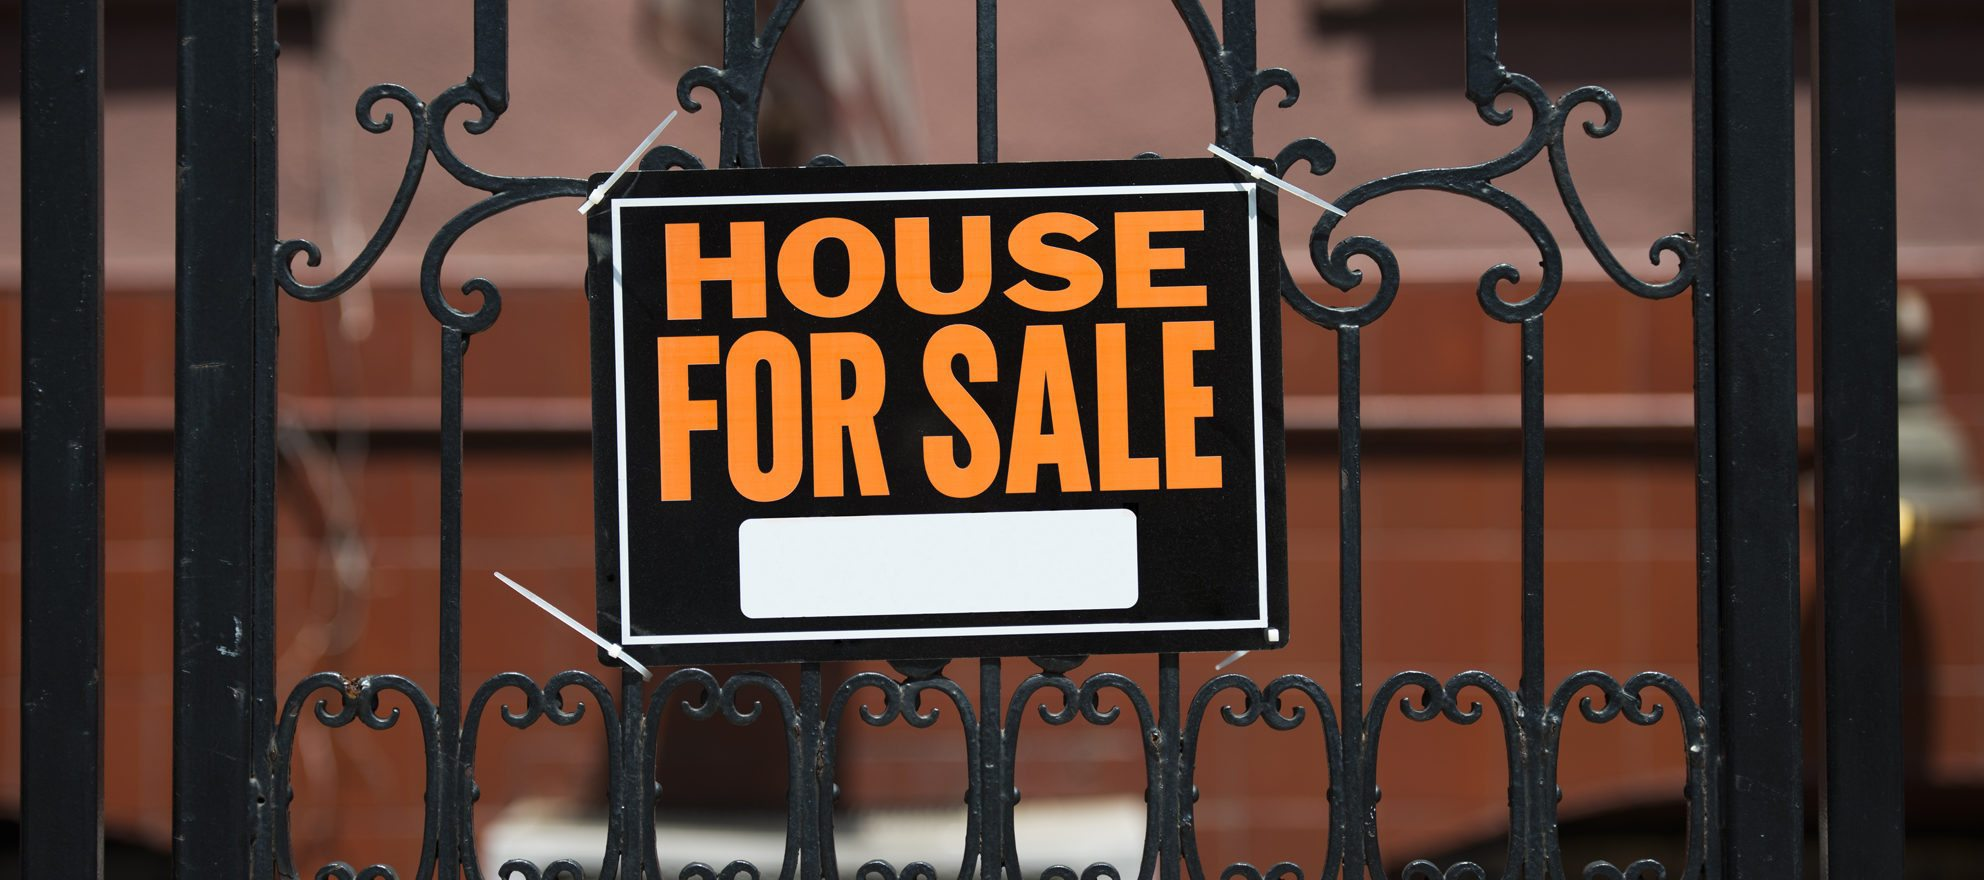 New York Fed calls US housing market 'anemic' and 'lackluster'